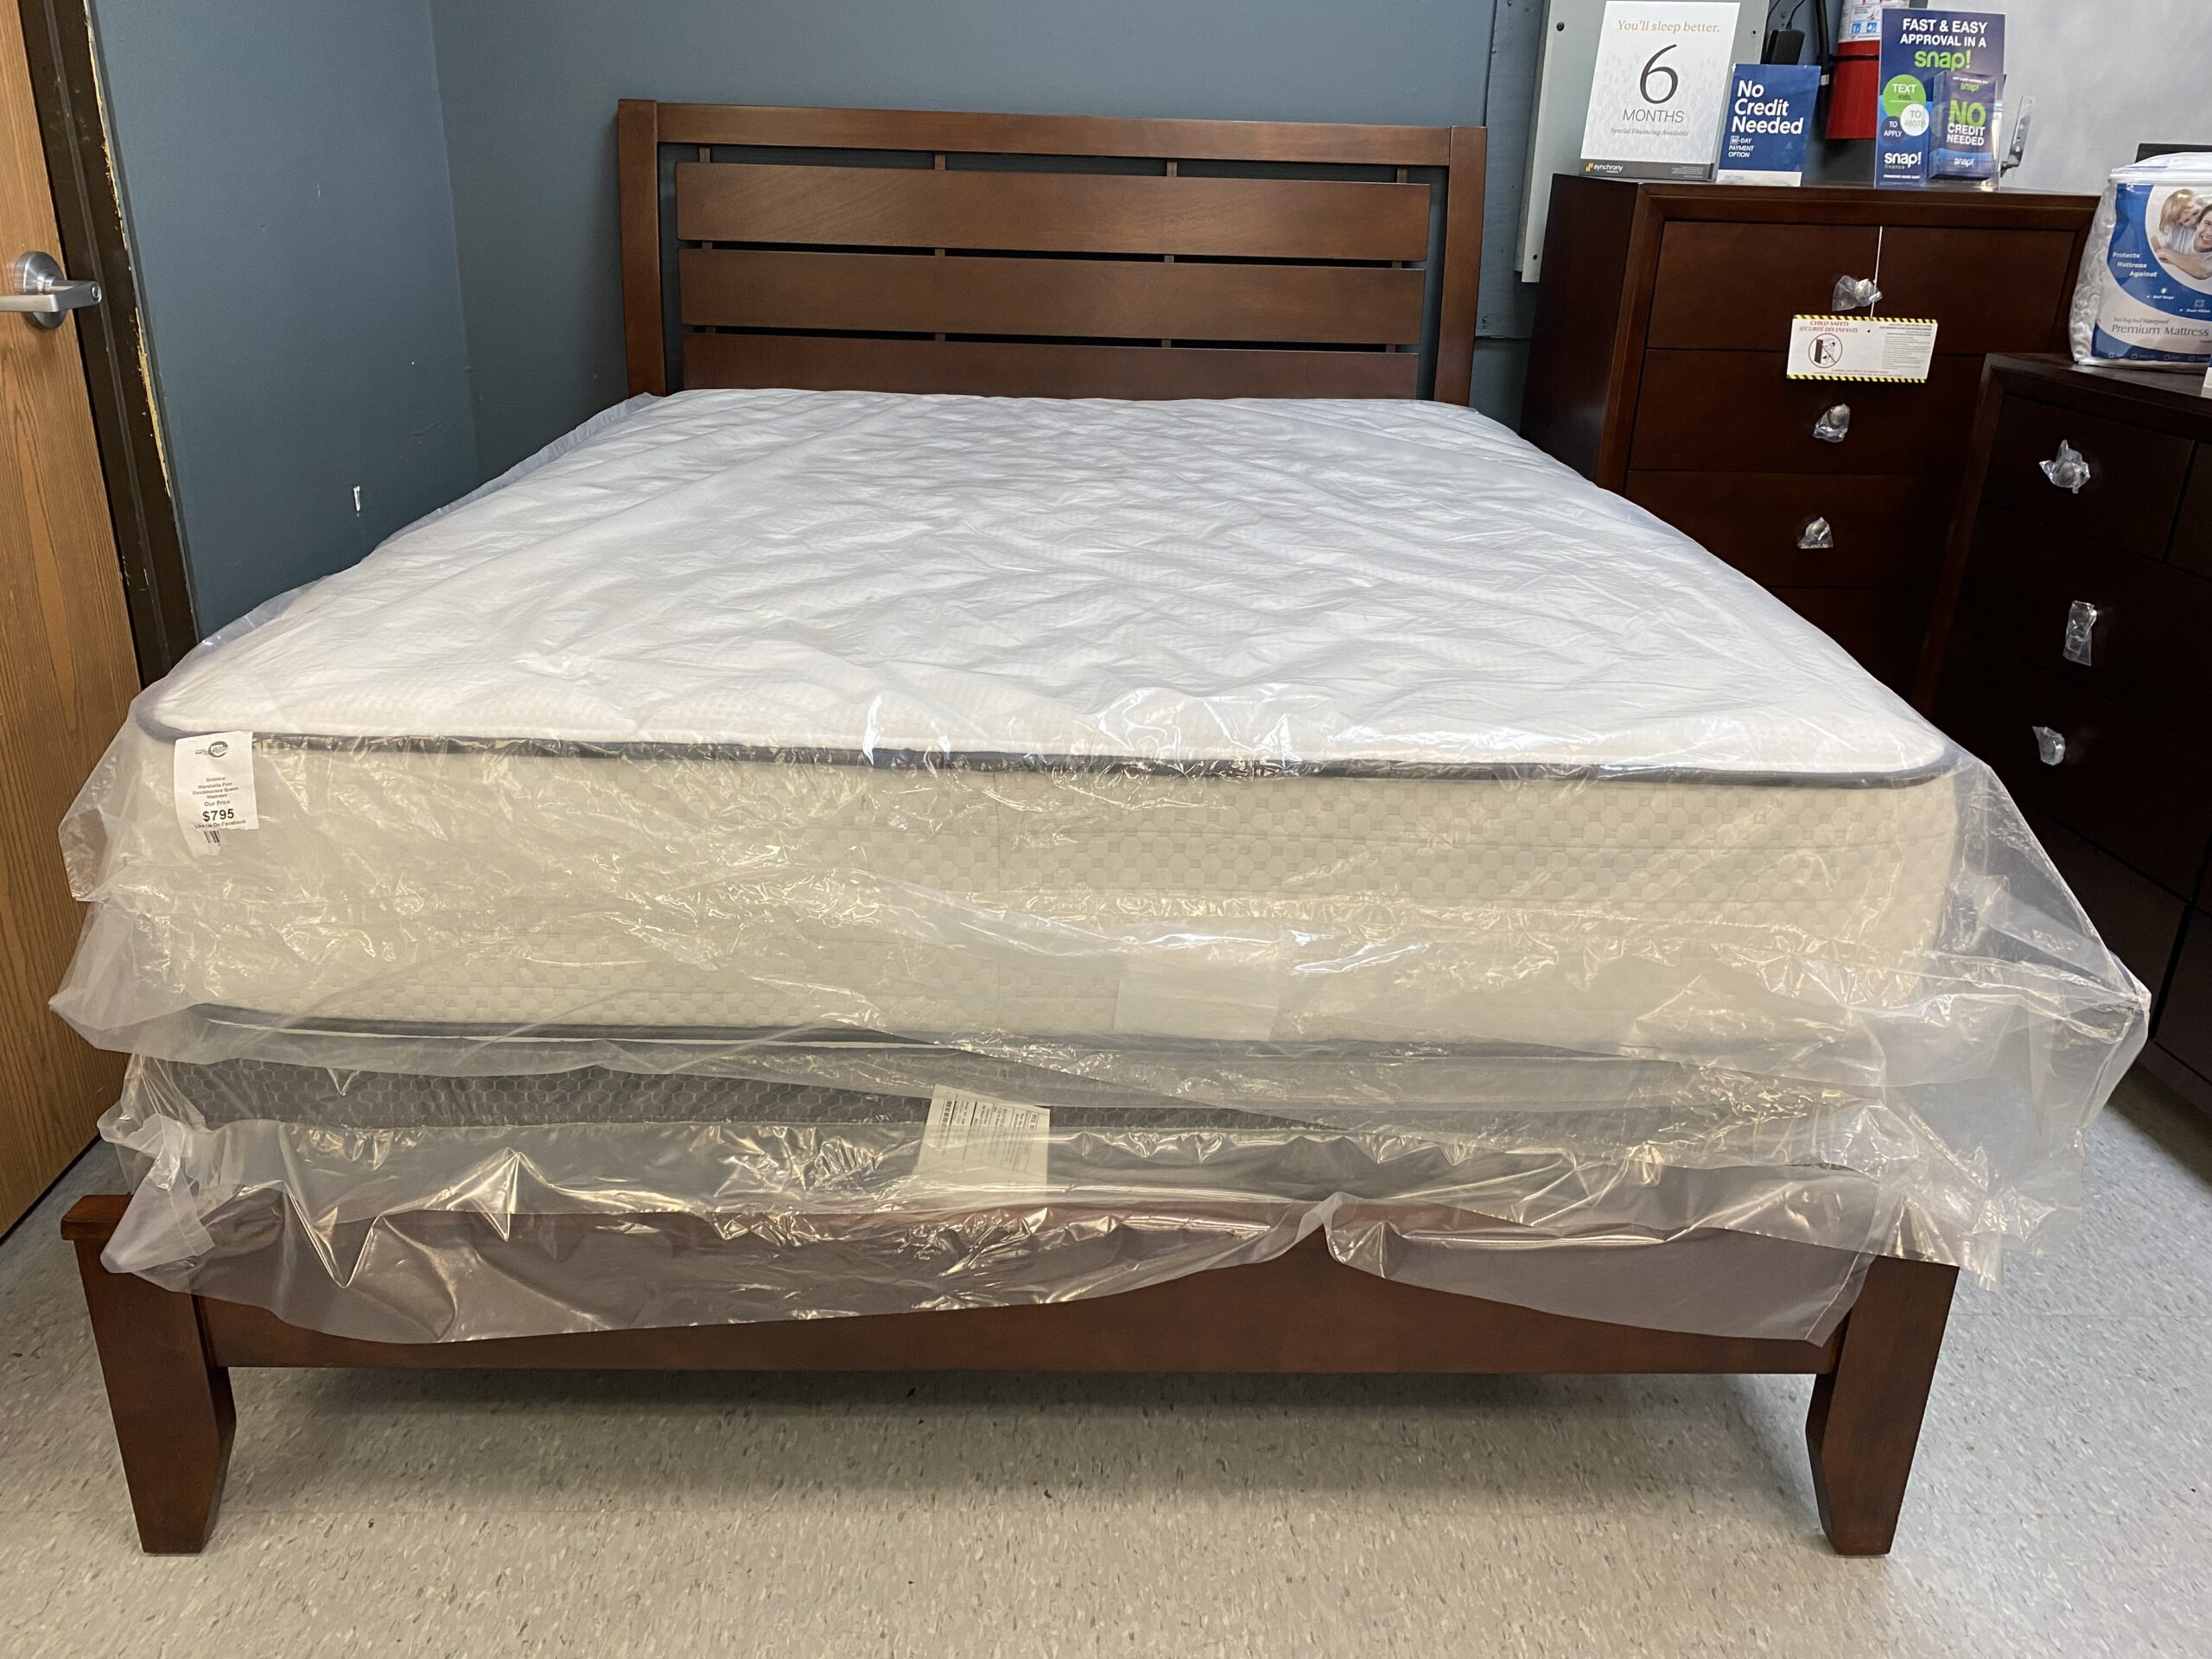 B-4700 King Bed